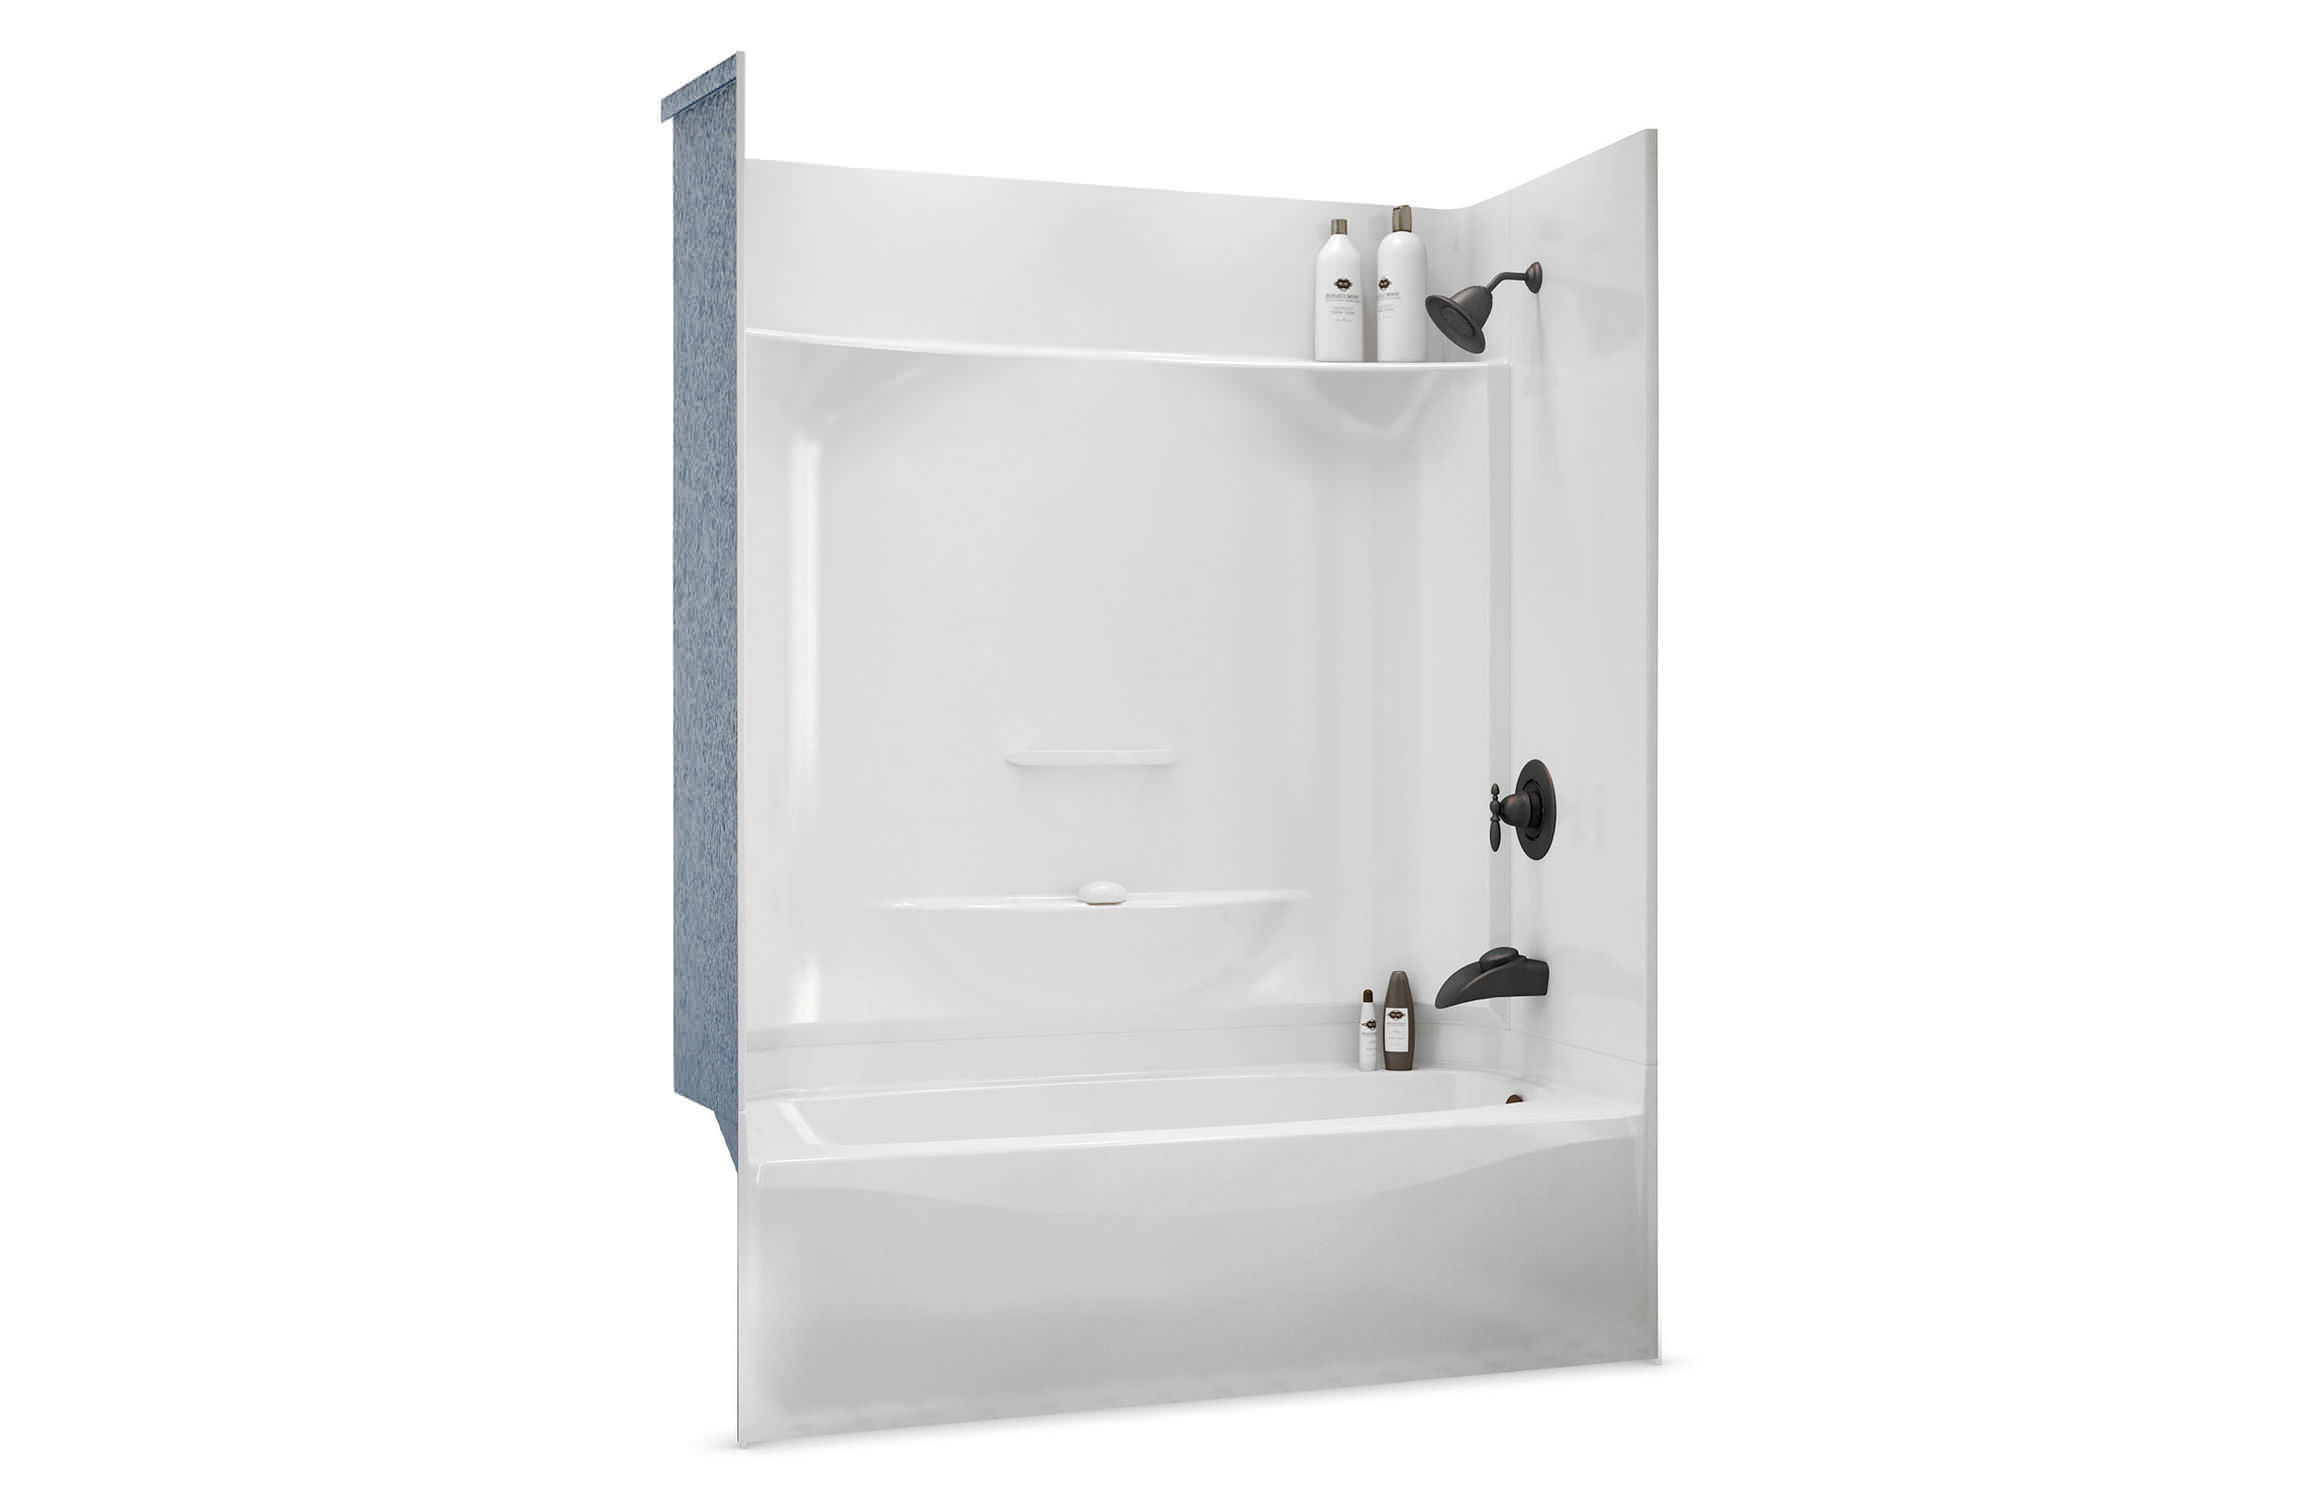 Built in bathtub shower combination   rectangular   acrylic KDTS 3260  MAAX bathroomBuilt in bathtub shower combination   rectangular   acrylic   KDTS  . Maax Tub Shower Combo. Home Design Ideas